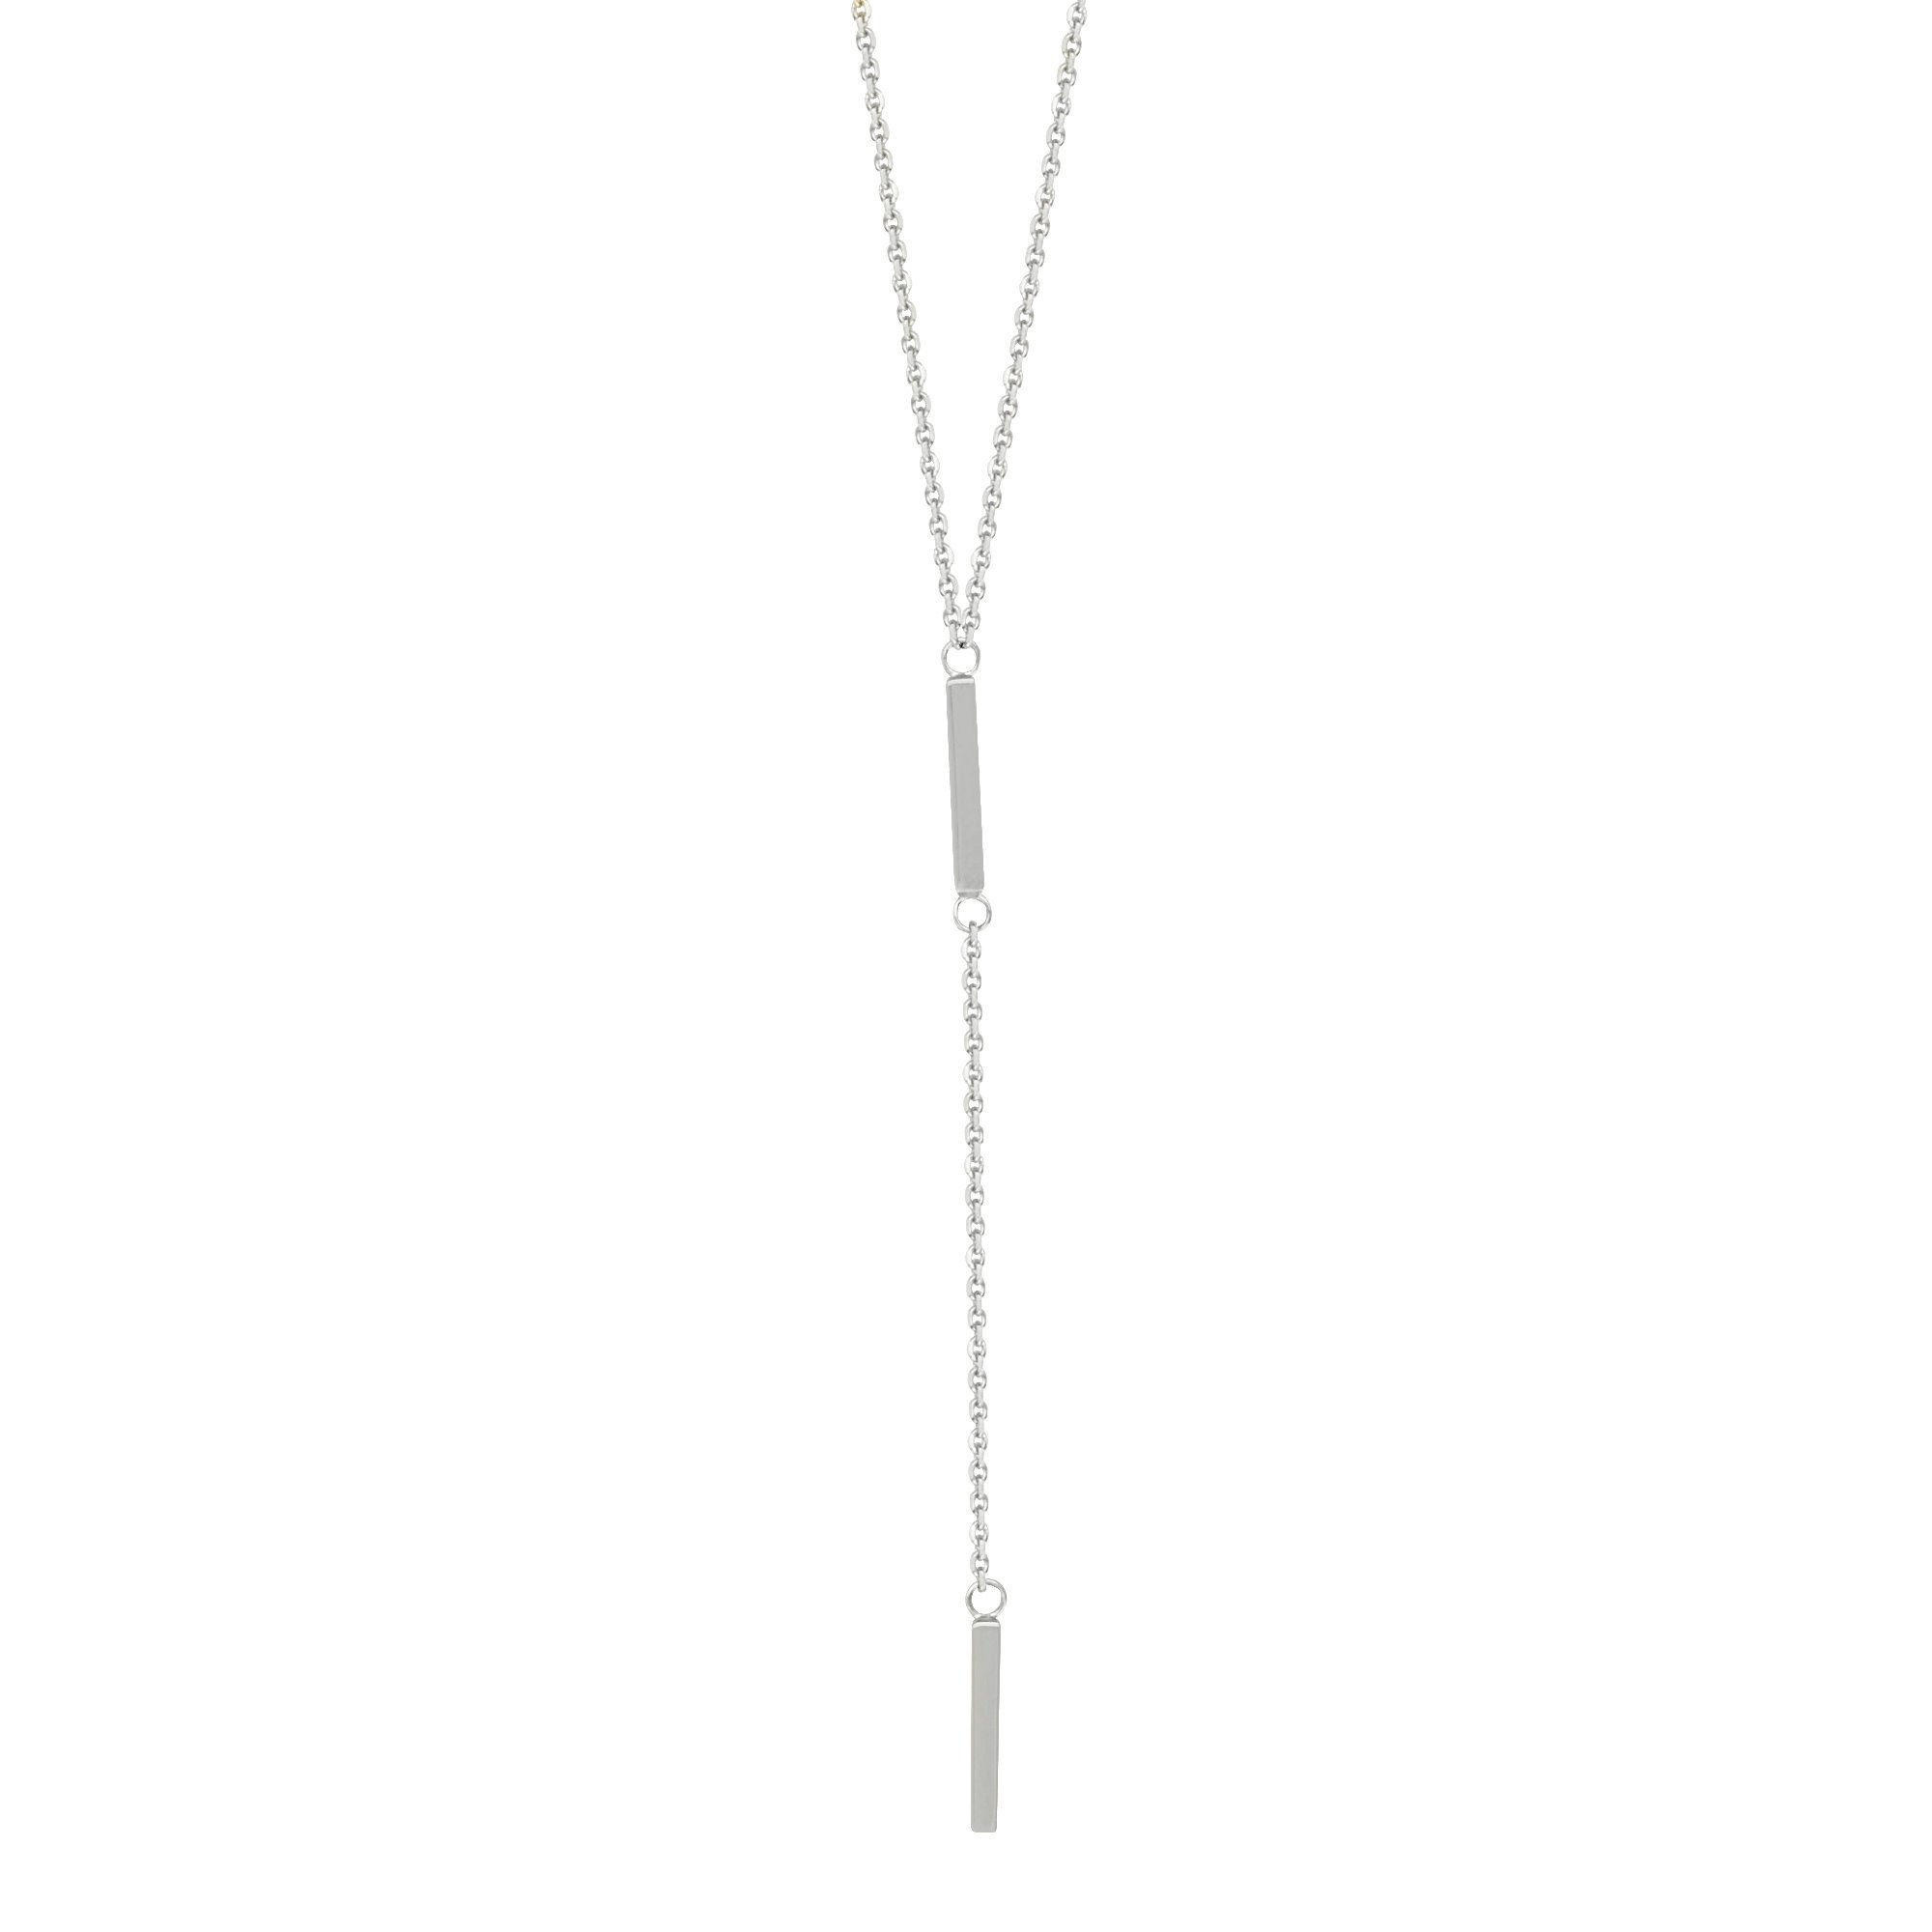 14k White Gold Lariat Necklace with Two Bar Drops Y-style Adjustable Length by AzureBella Jewelry